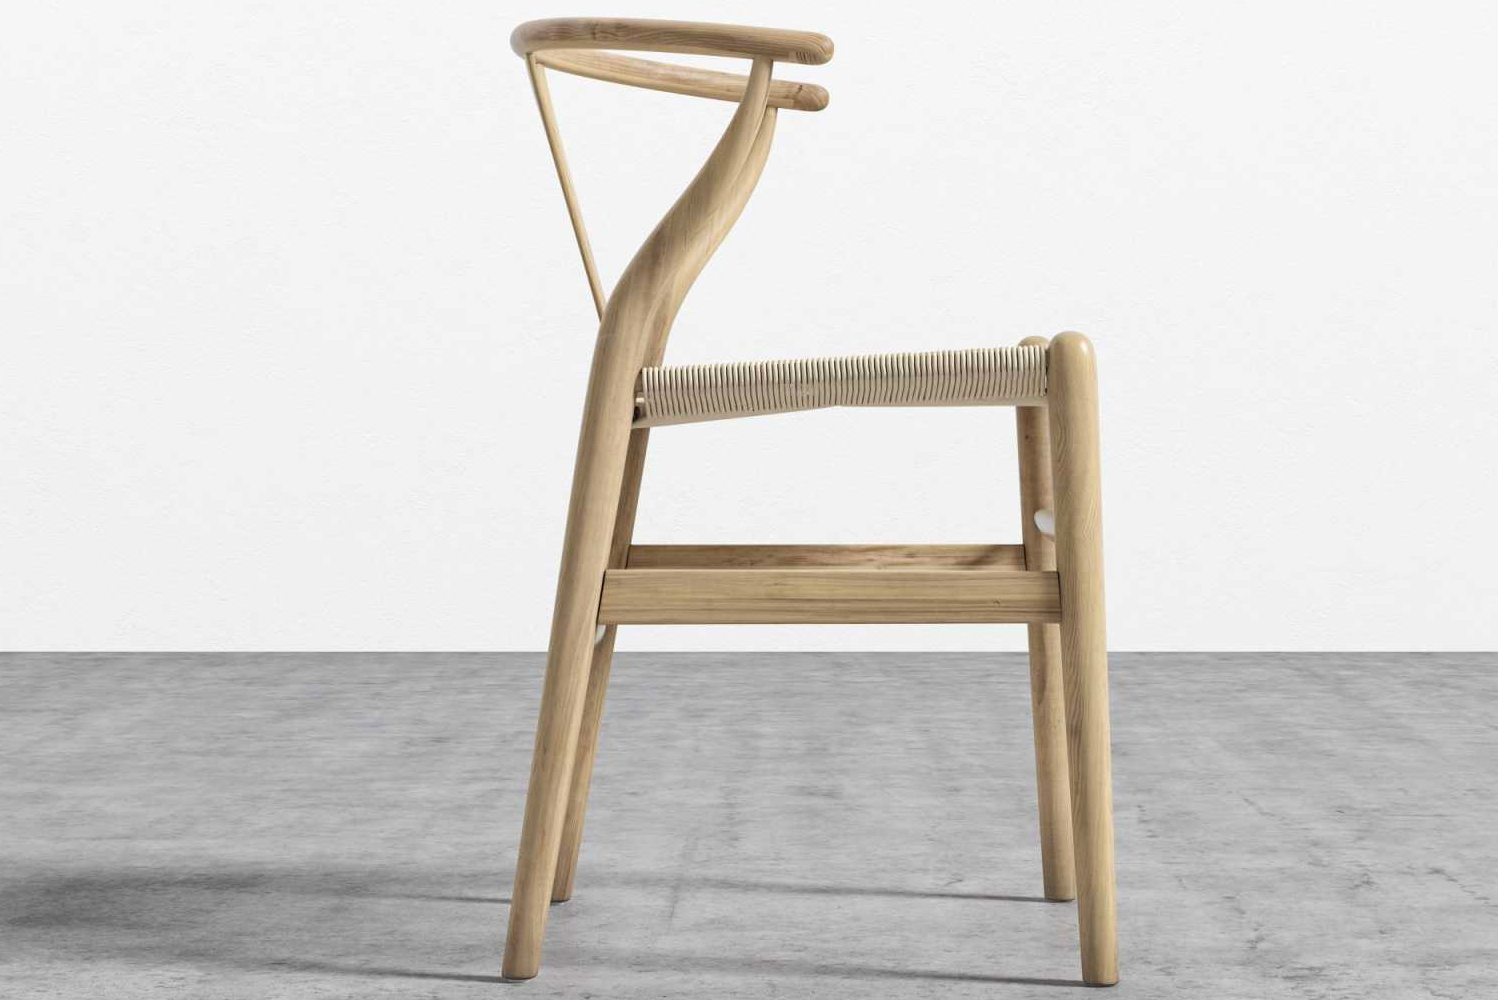 The chair has a curving top rail and tapered legs, as well as flexible yet sturdy woven seat.